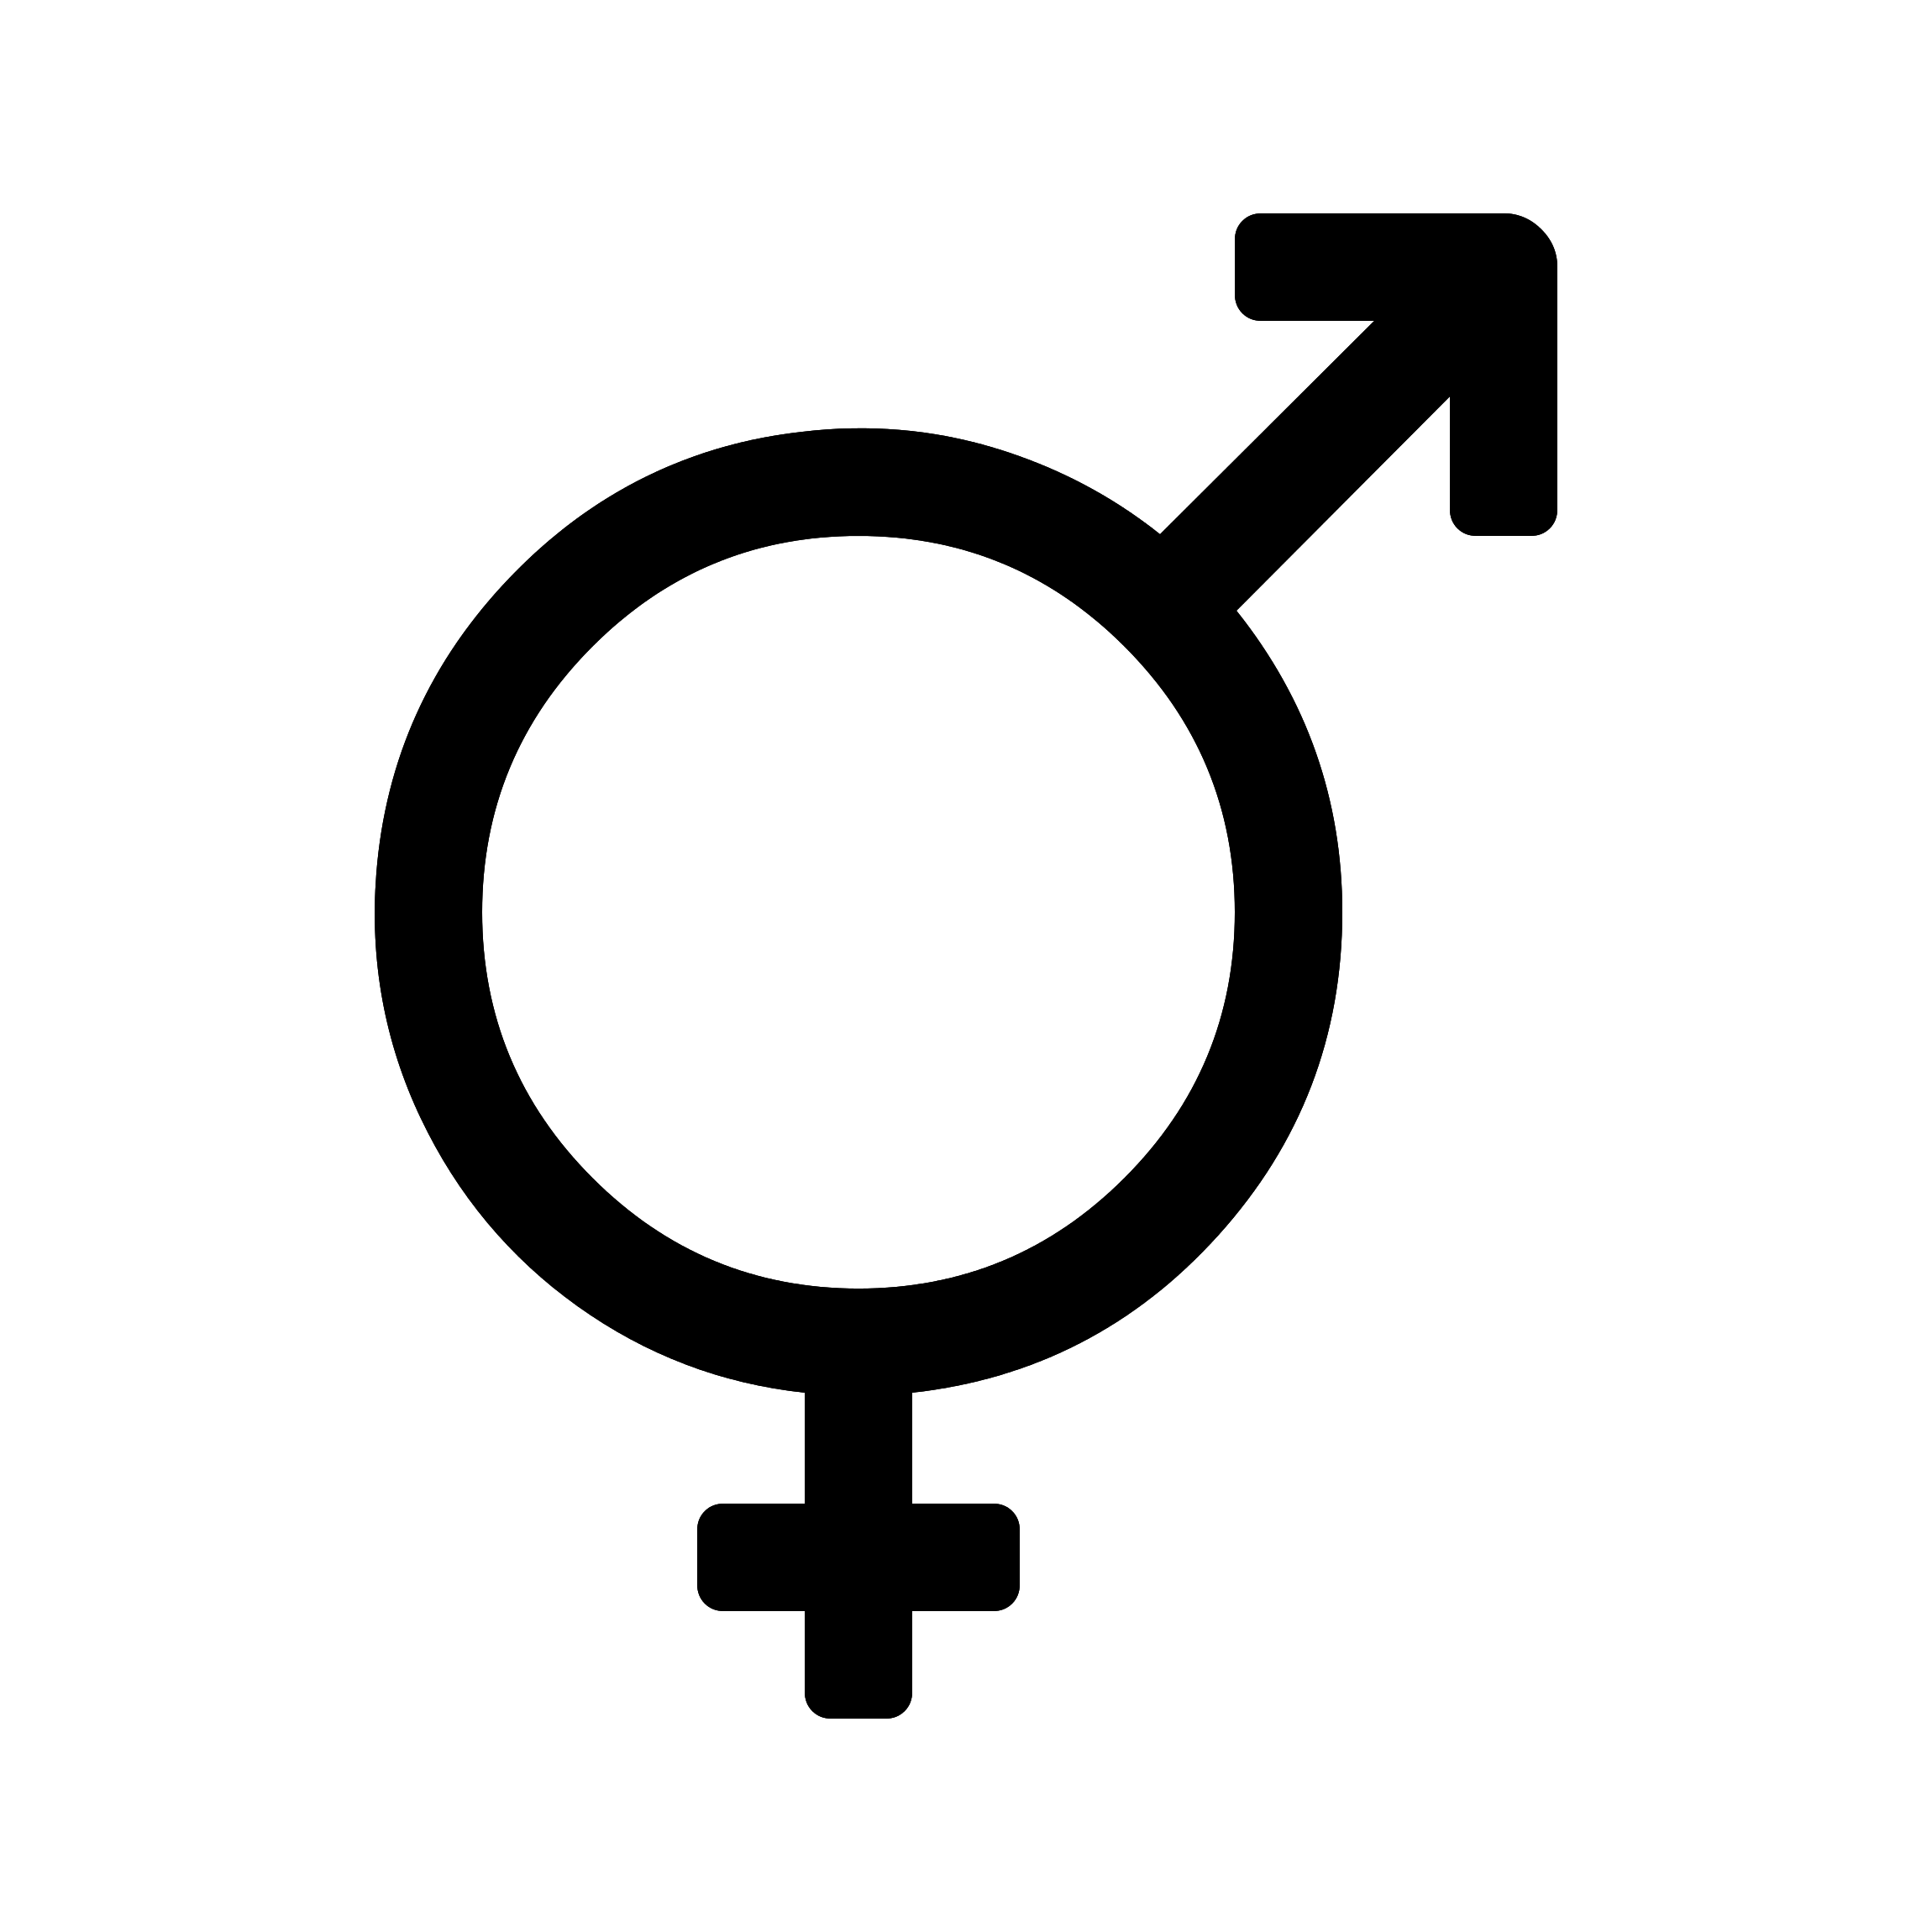 data/images/intersex.png